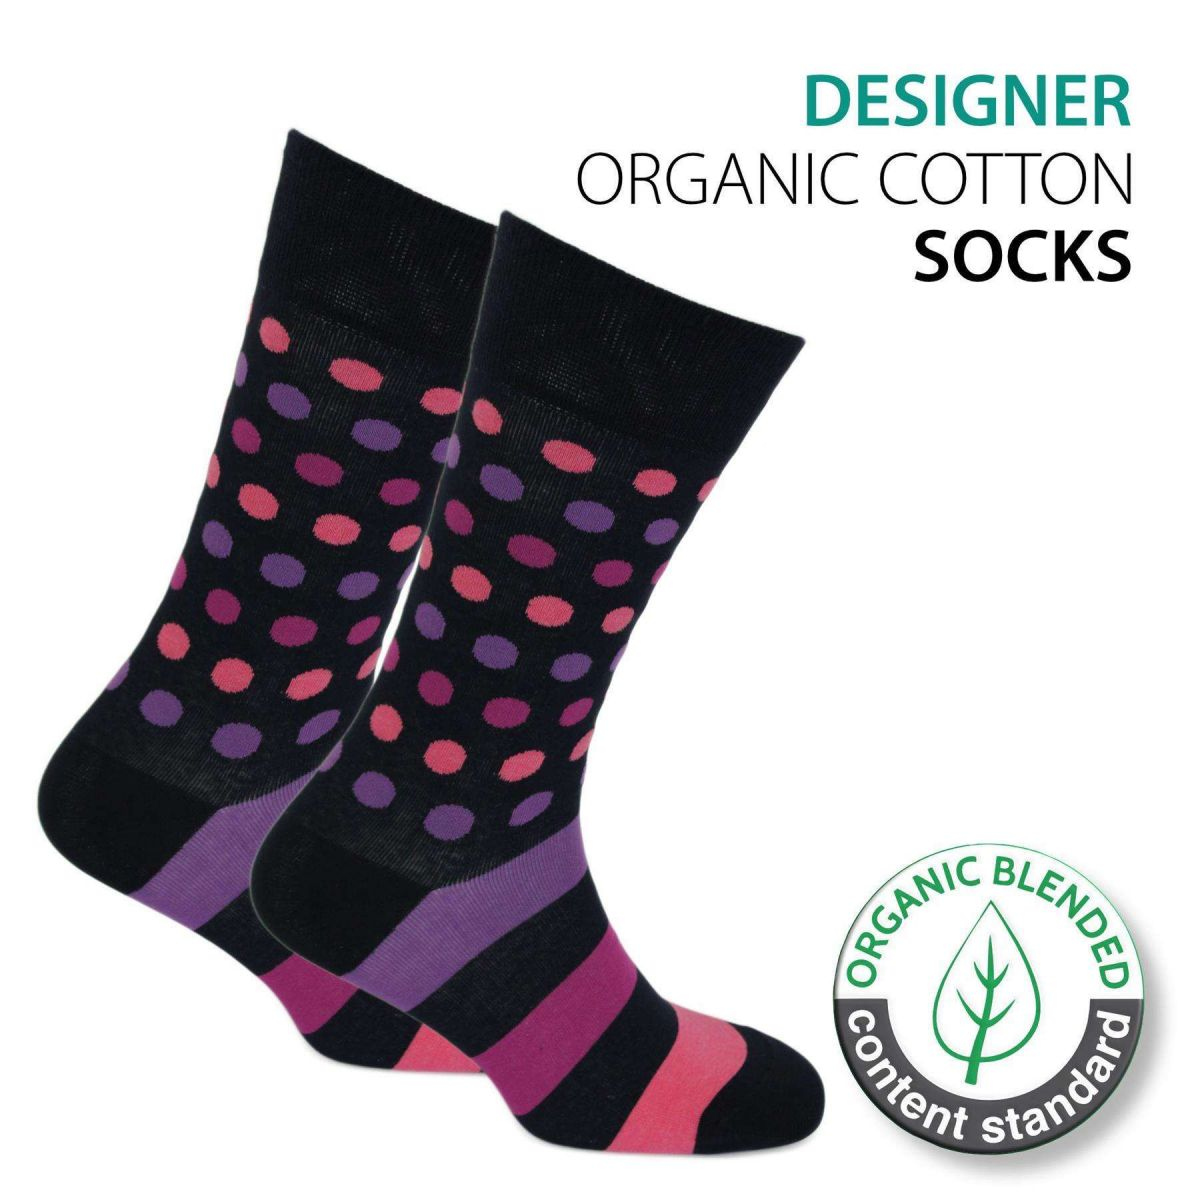 Certified Organic Patterned Cotton Socks - 063